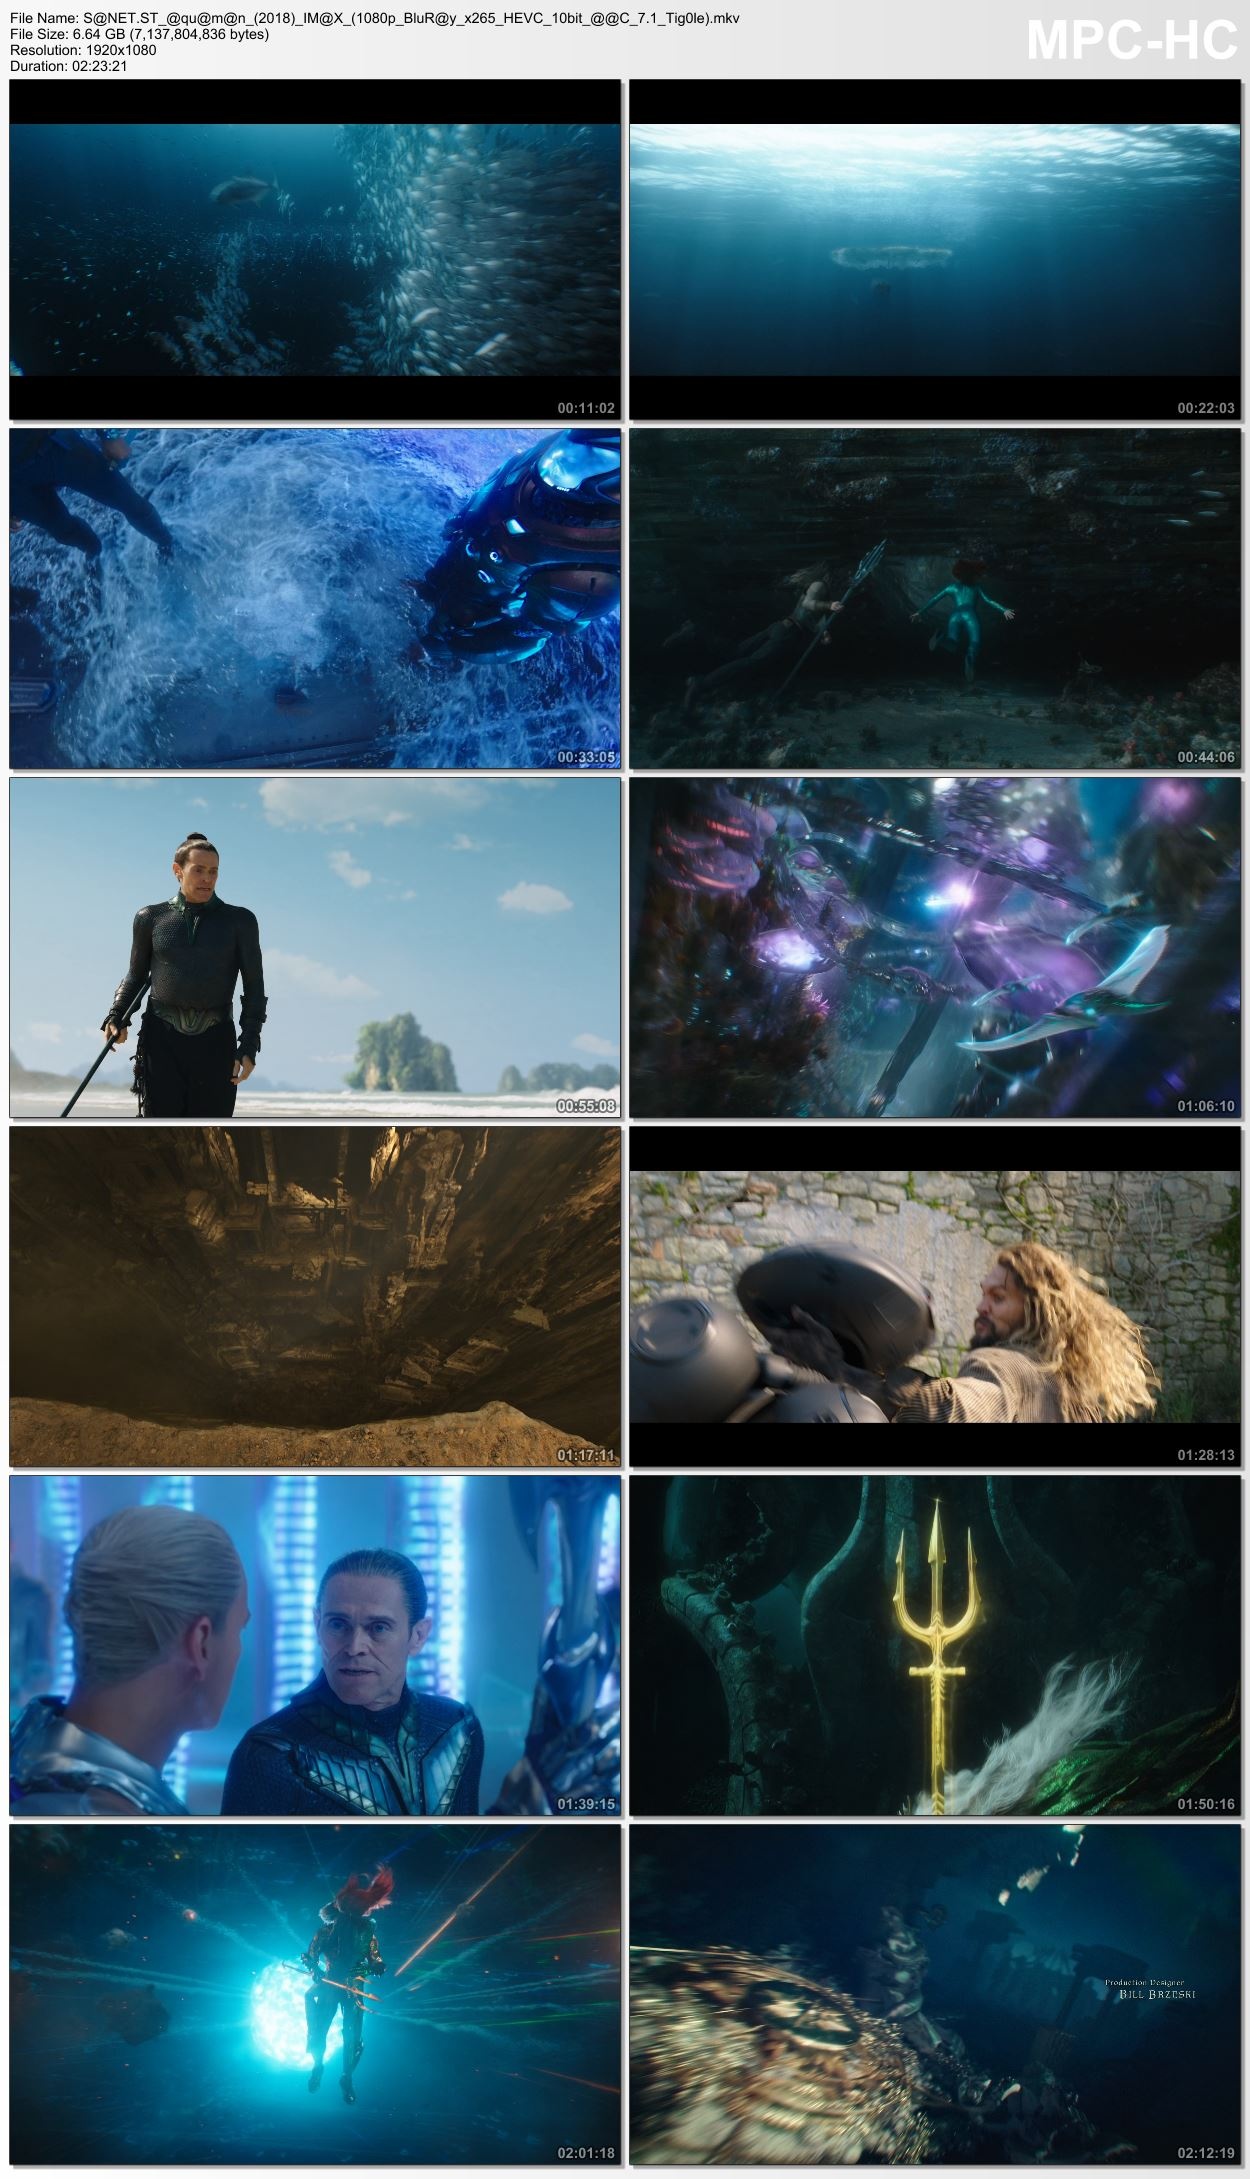 Download Aquaman 2018 IMAX 1080p BluRay x265 HEVC 10bit AAC 7 1